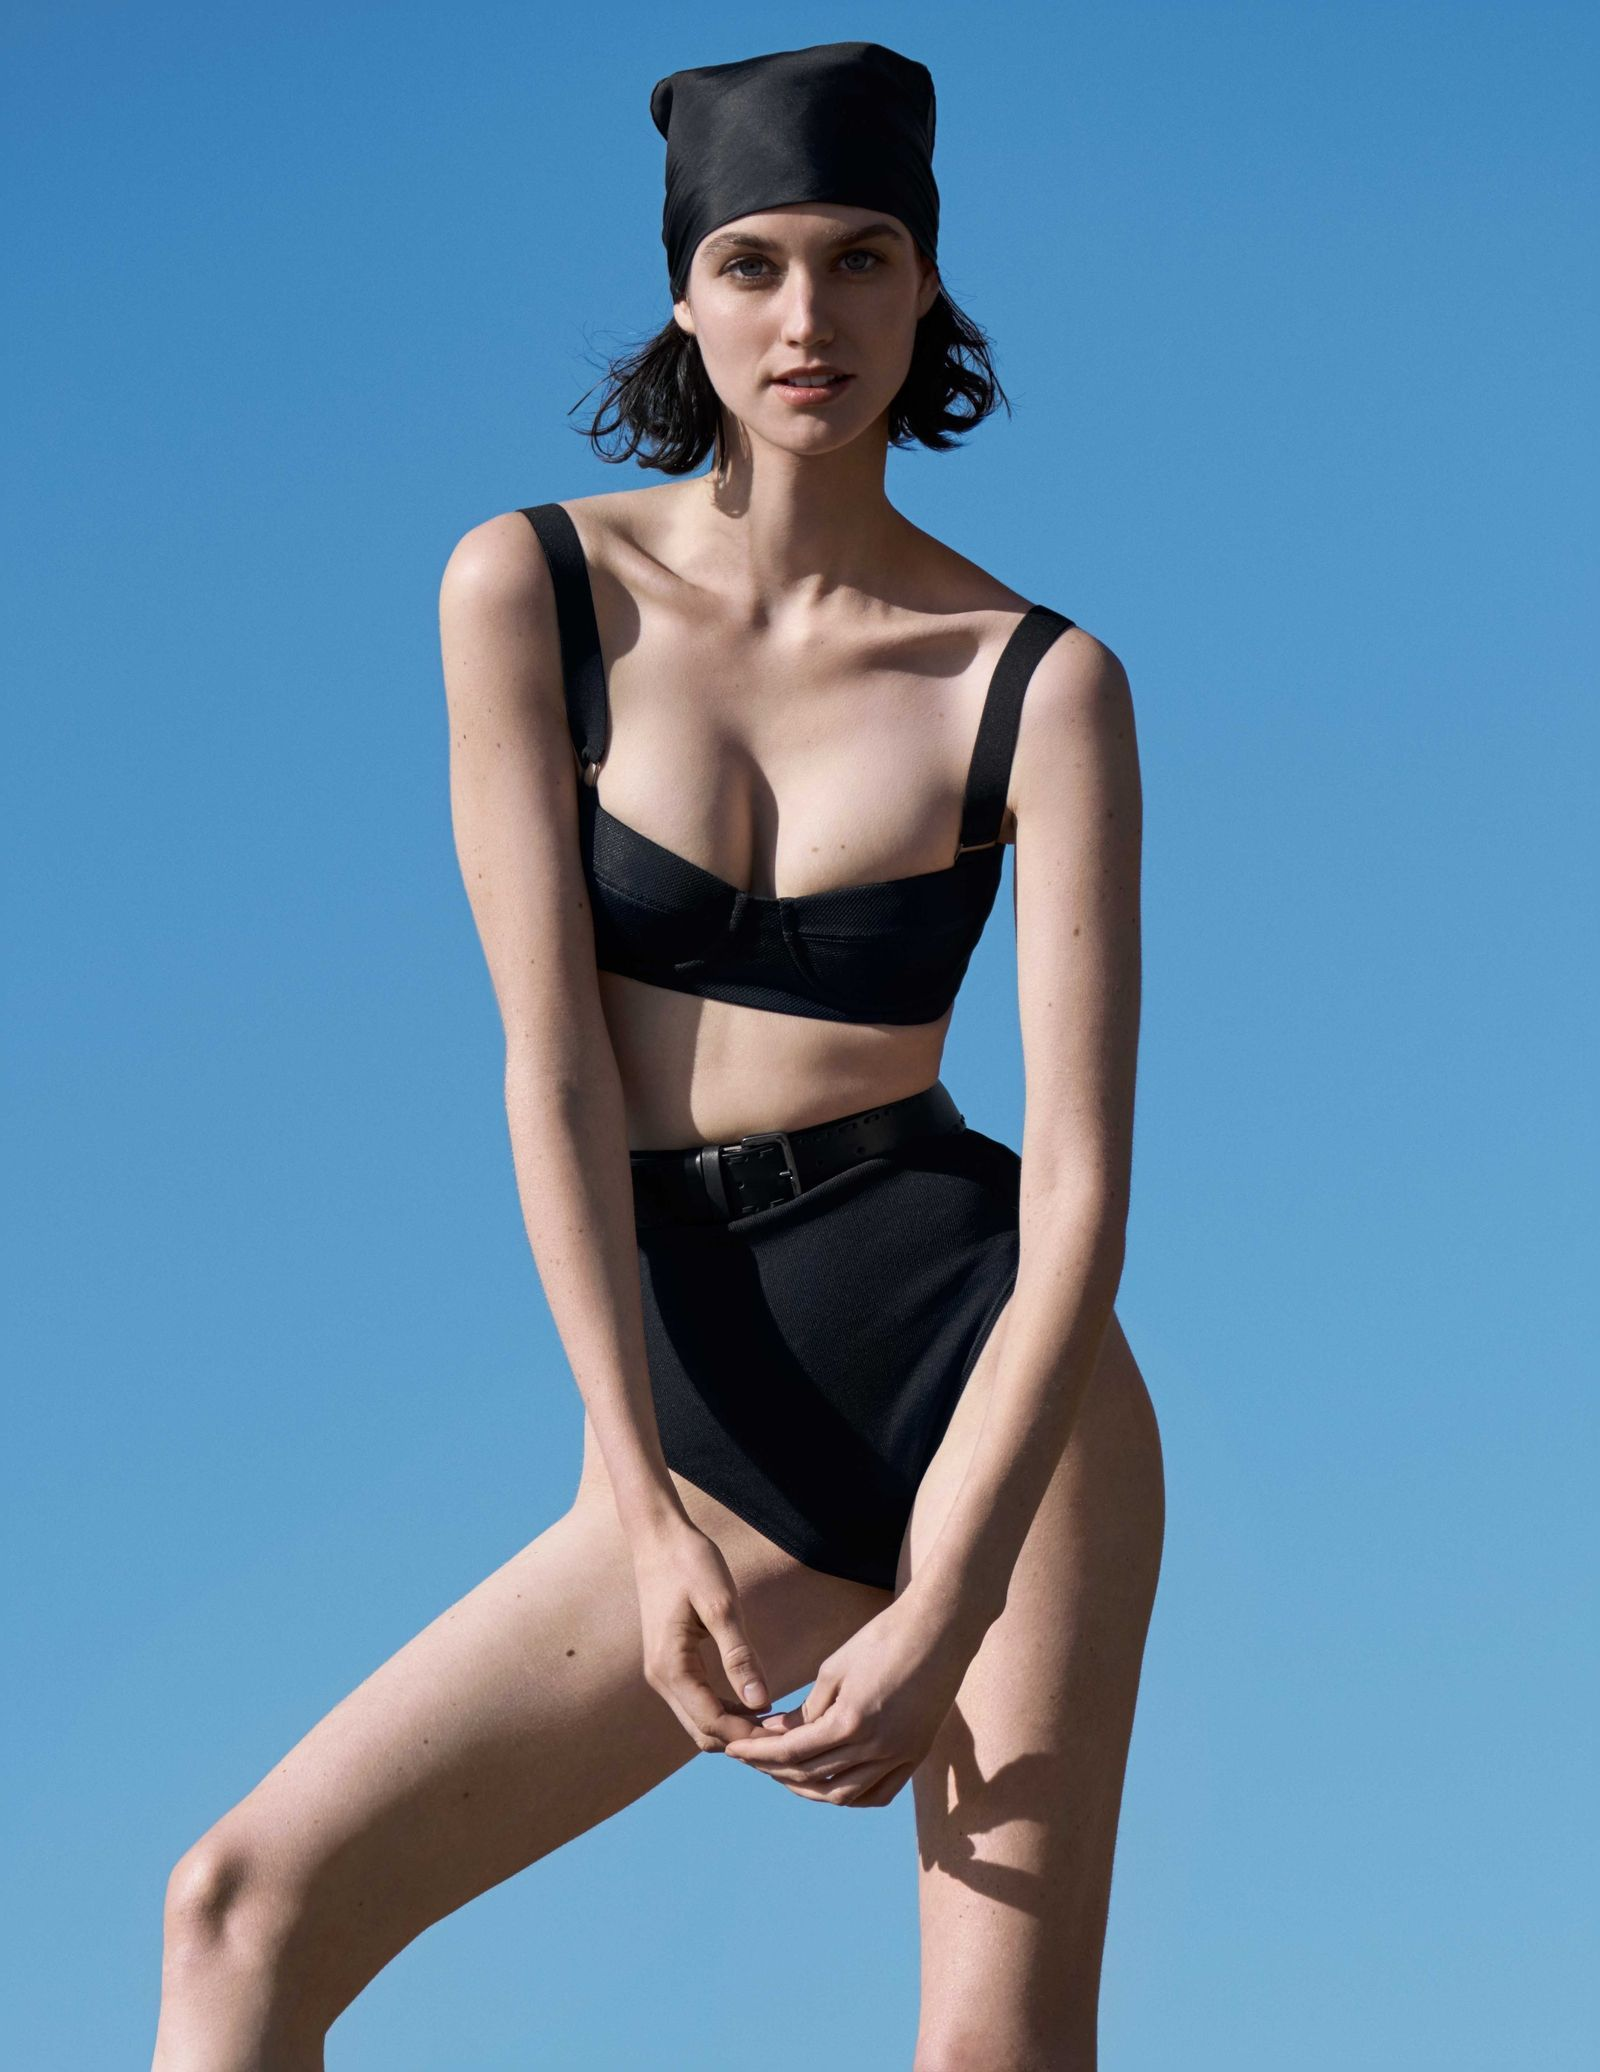 Cleavage Manon Leloup nude (65 photo), Sexy, Fappening, Feet, cameltoe 2019